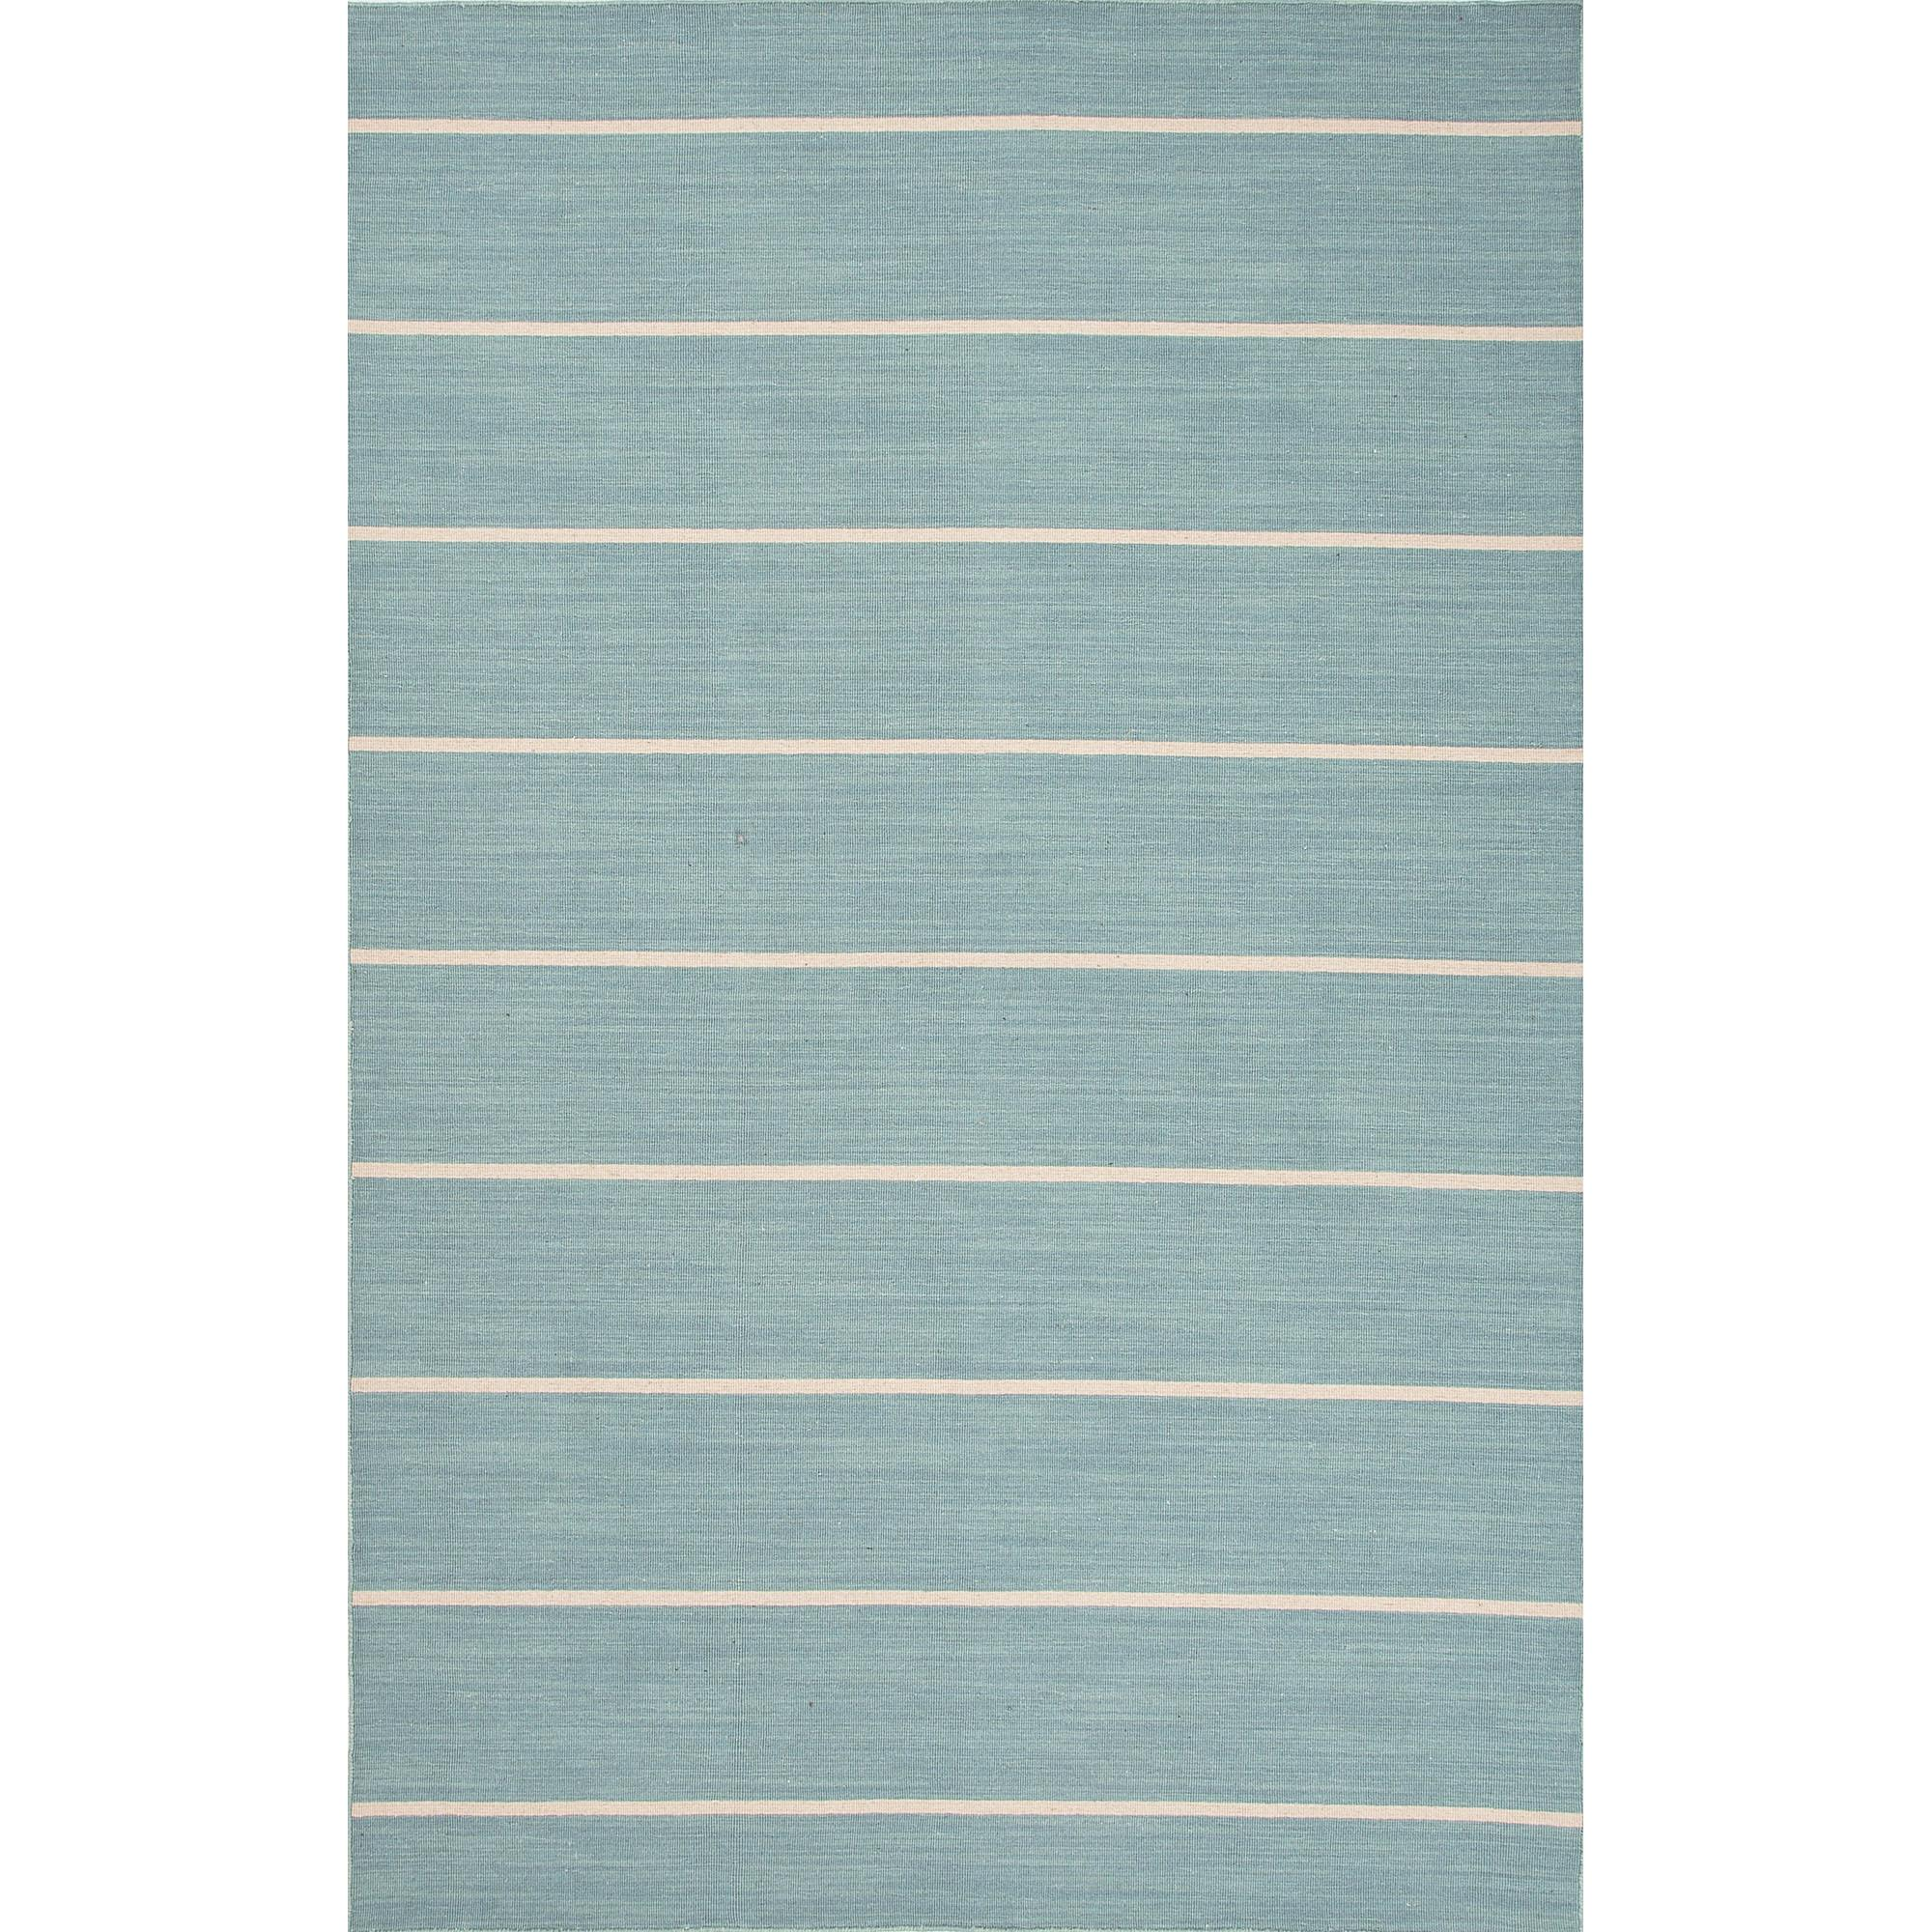 JAIPUR Rugs Coastal Shores 2 x 3 Rug - Item Number: RUG125065